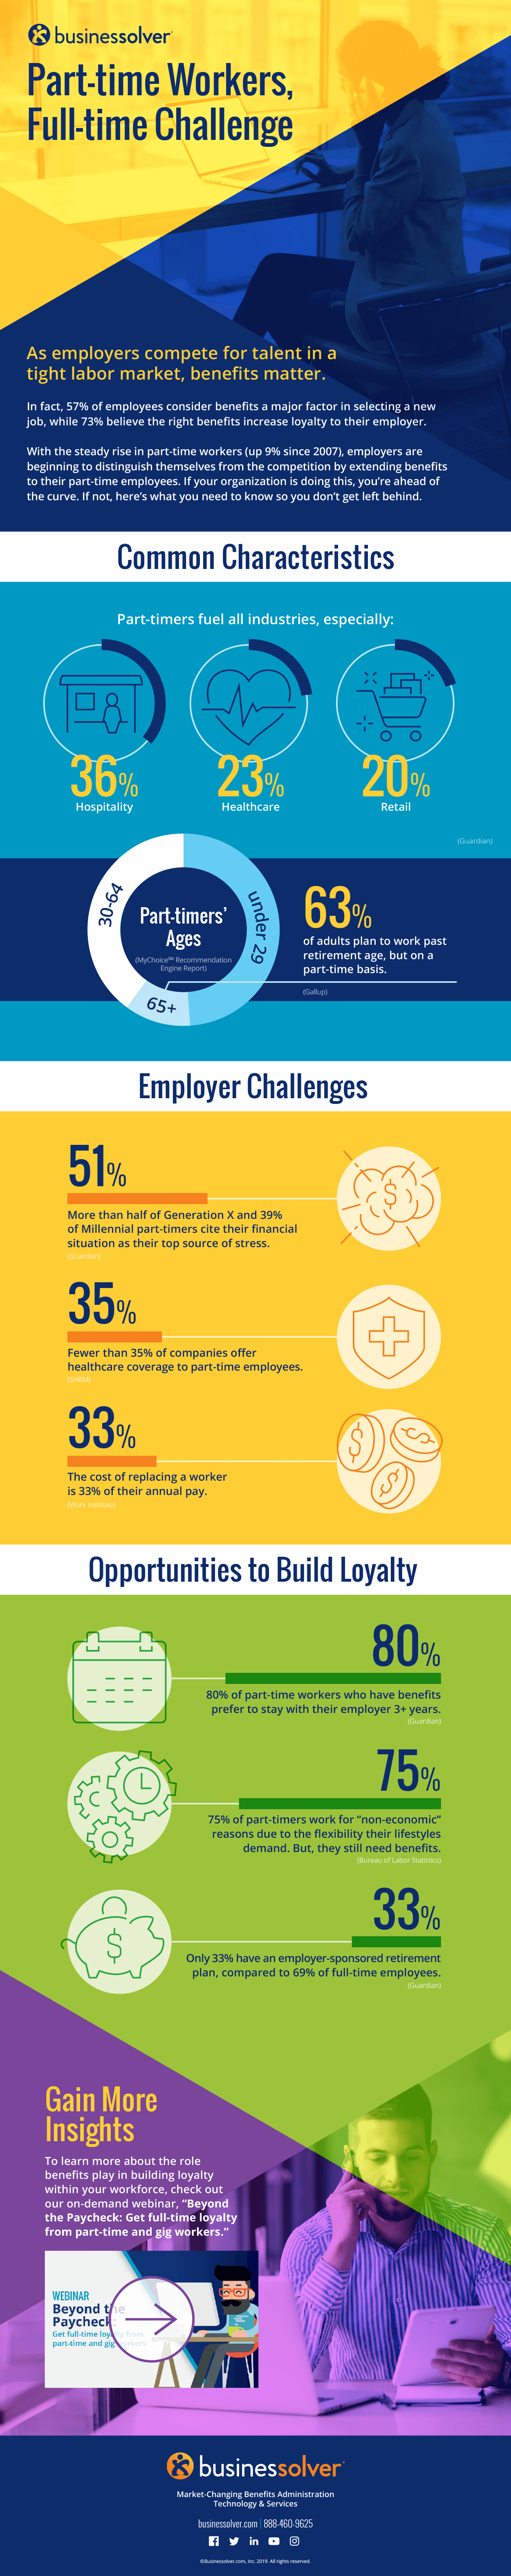 businessolver-part-time-workers-full-time-challenge-infographic